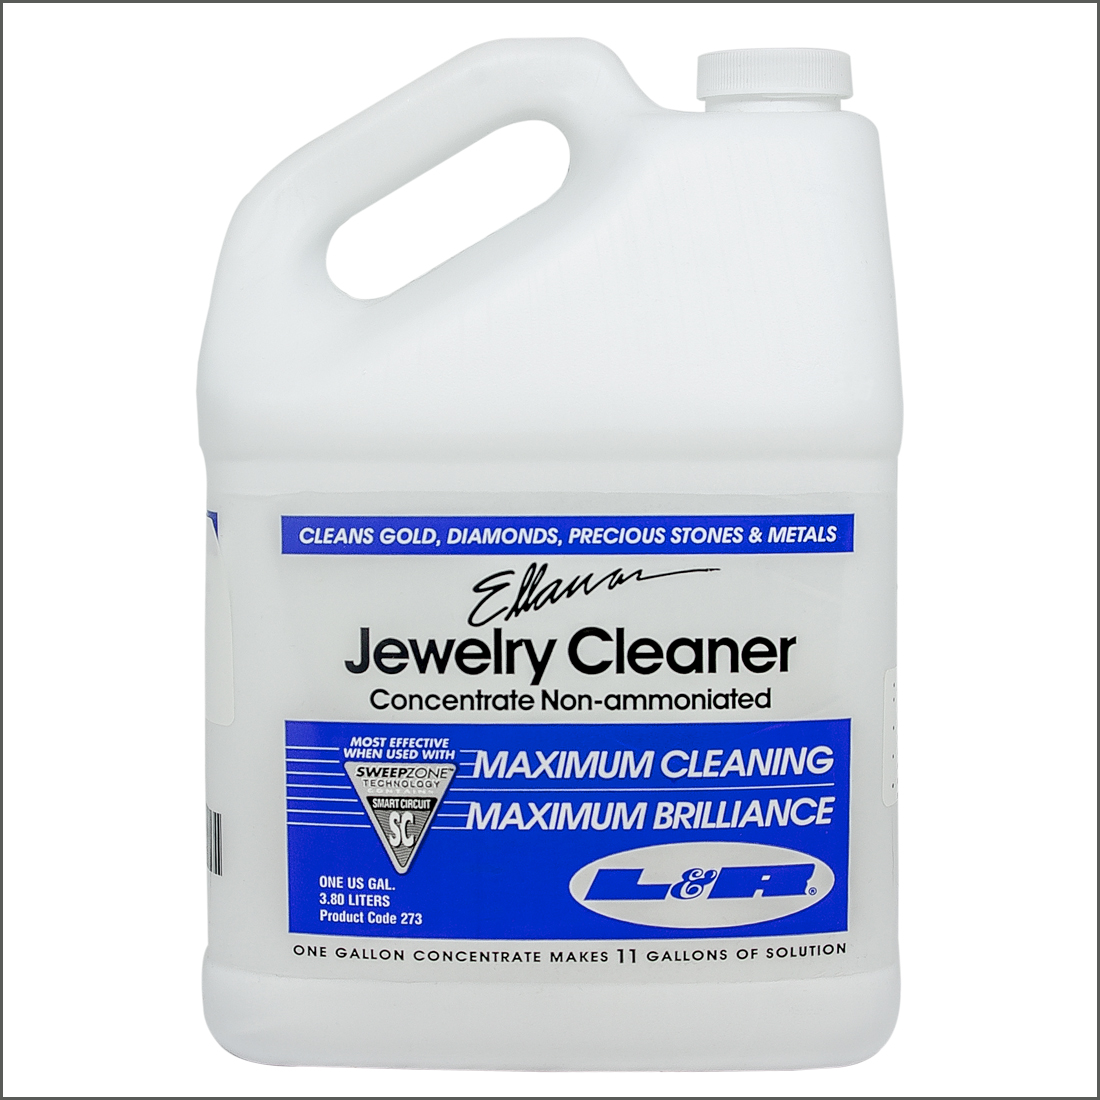 ELLANAR JEWELRY CLEANER N/A CONCENTRATE